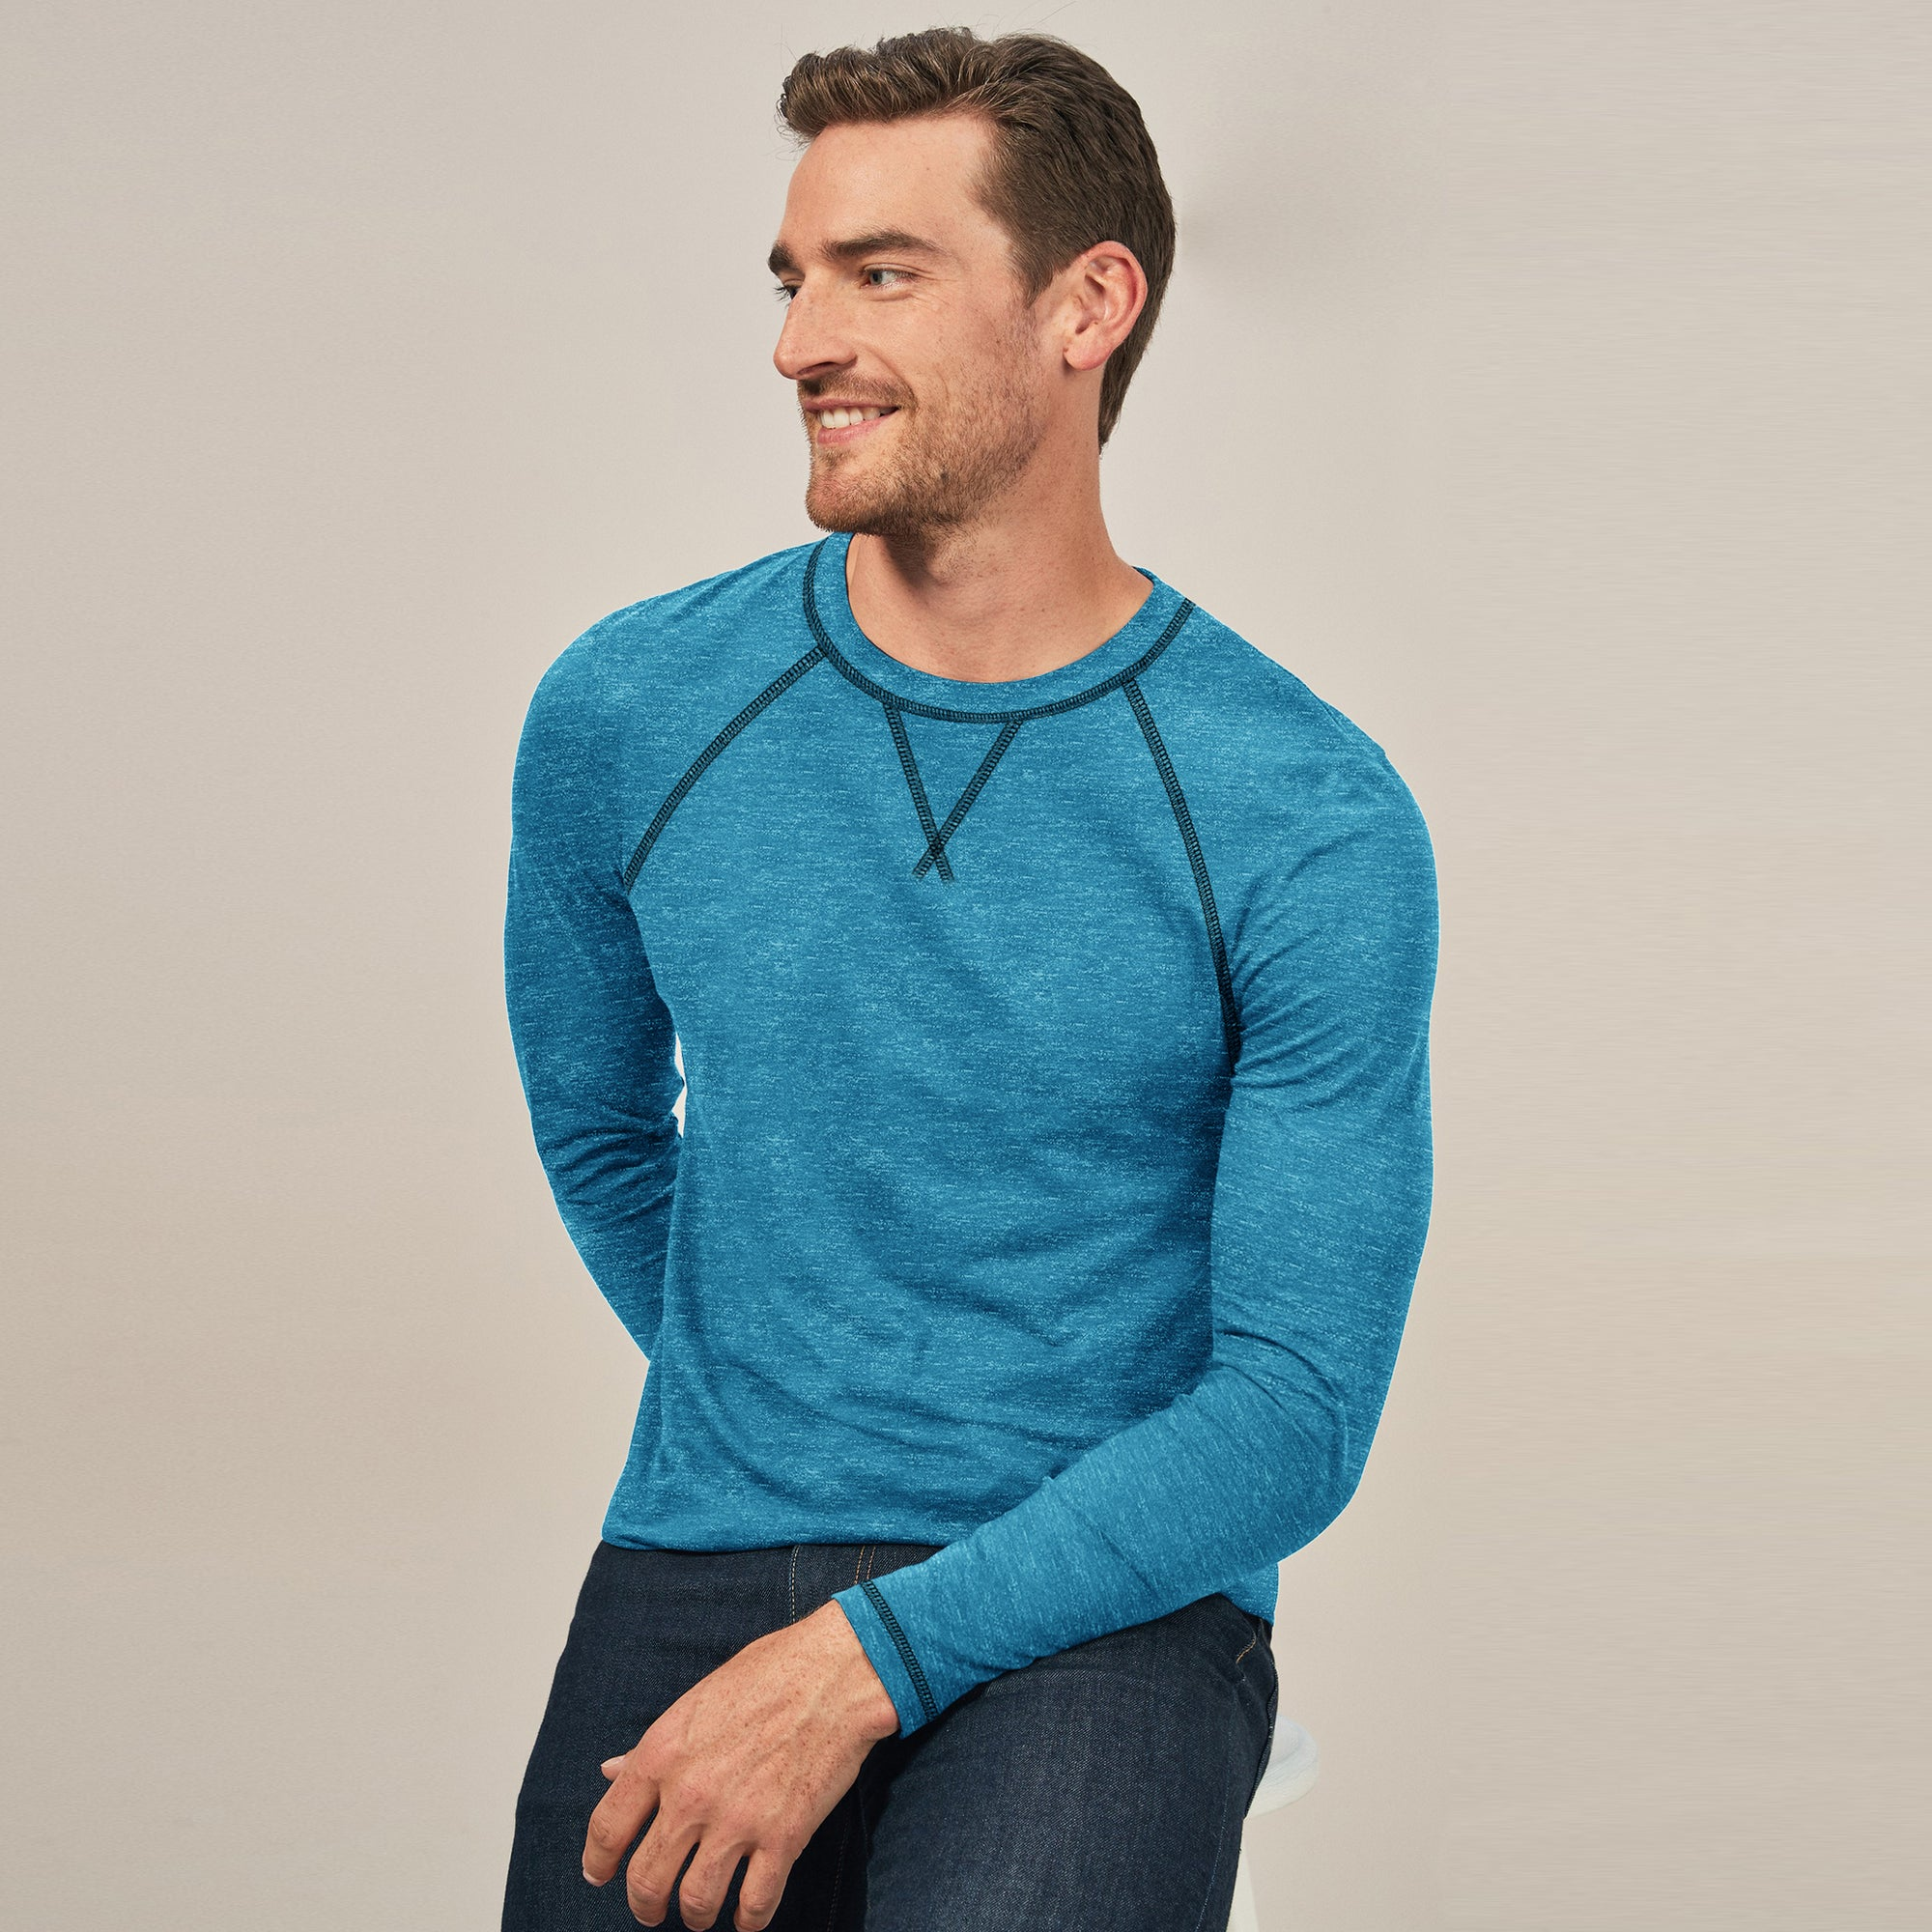 Beverly Hills Polo Club Single Jersey Shirt For Men-Cyan Melange-BE81574